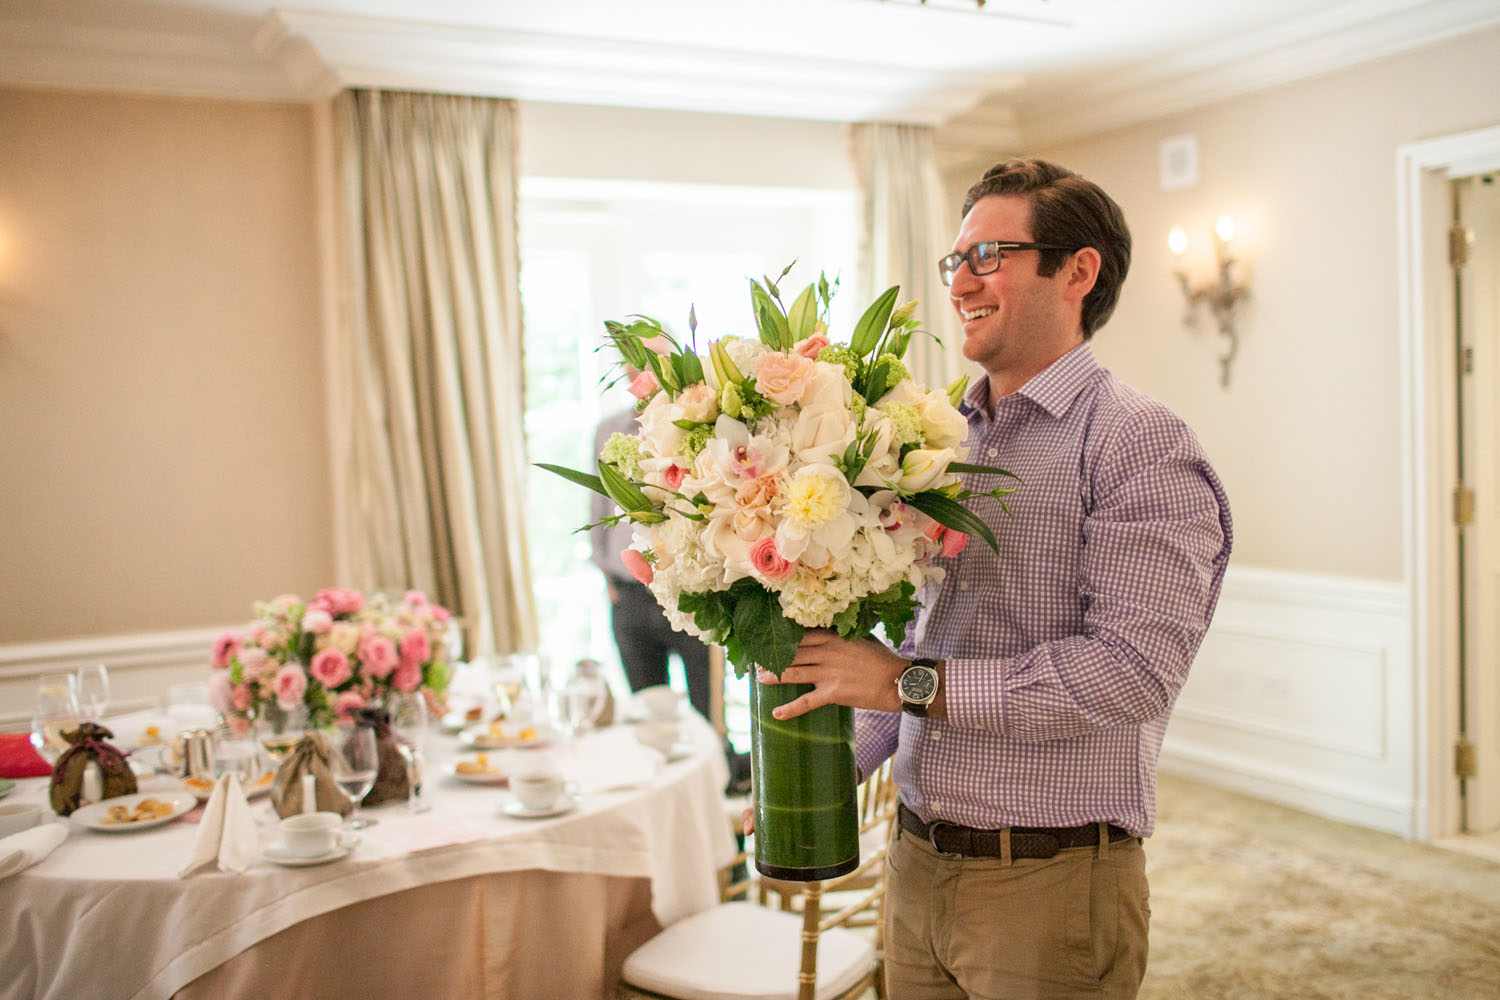 groom surprises bride with flowers at bridal shower